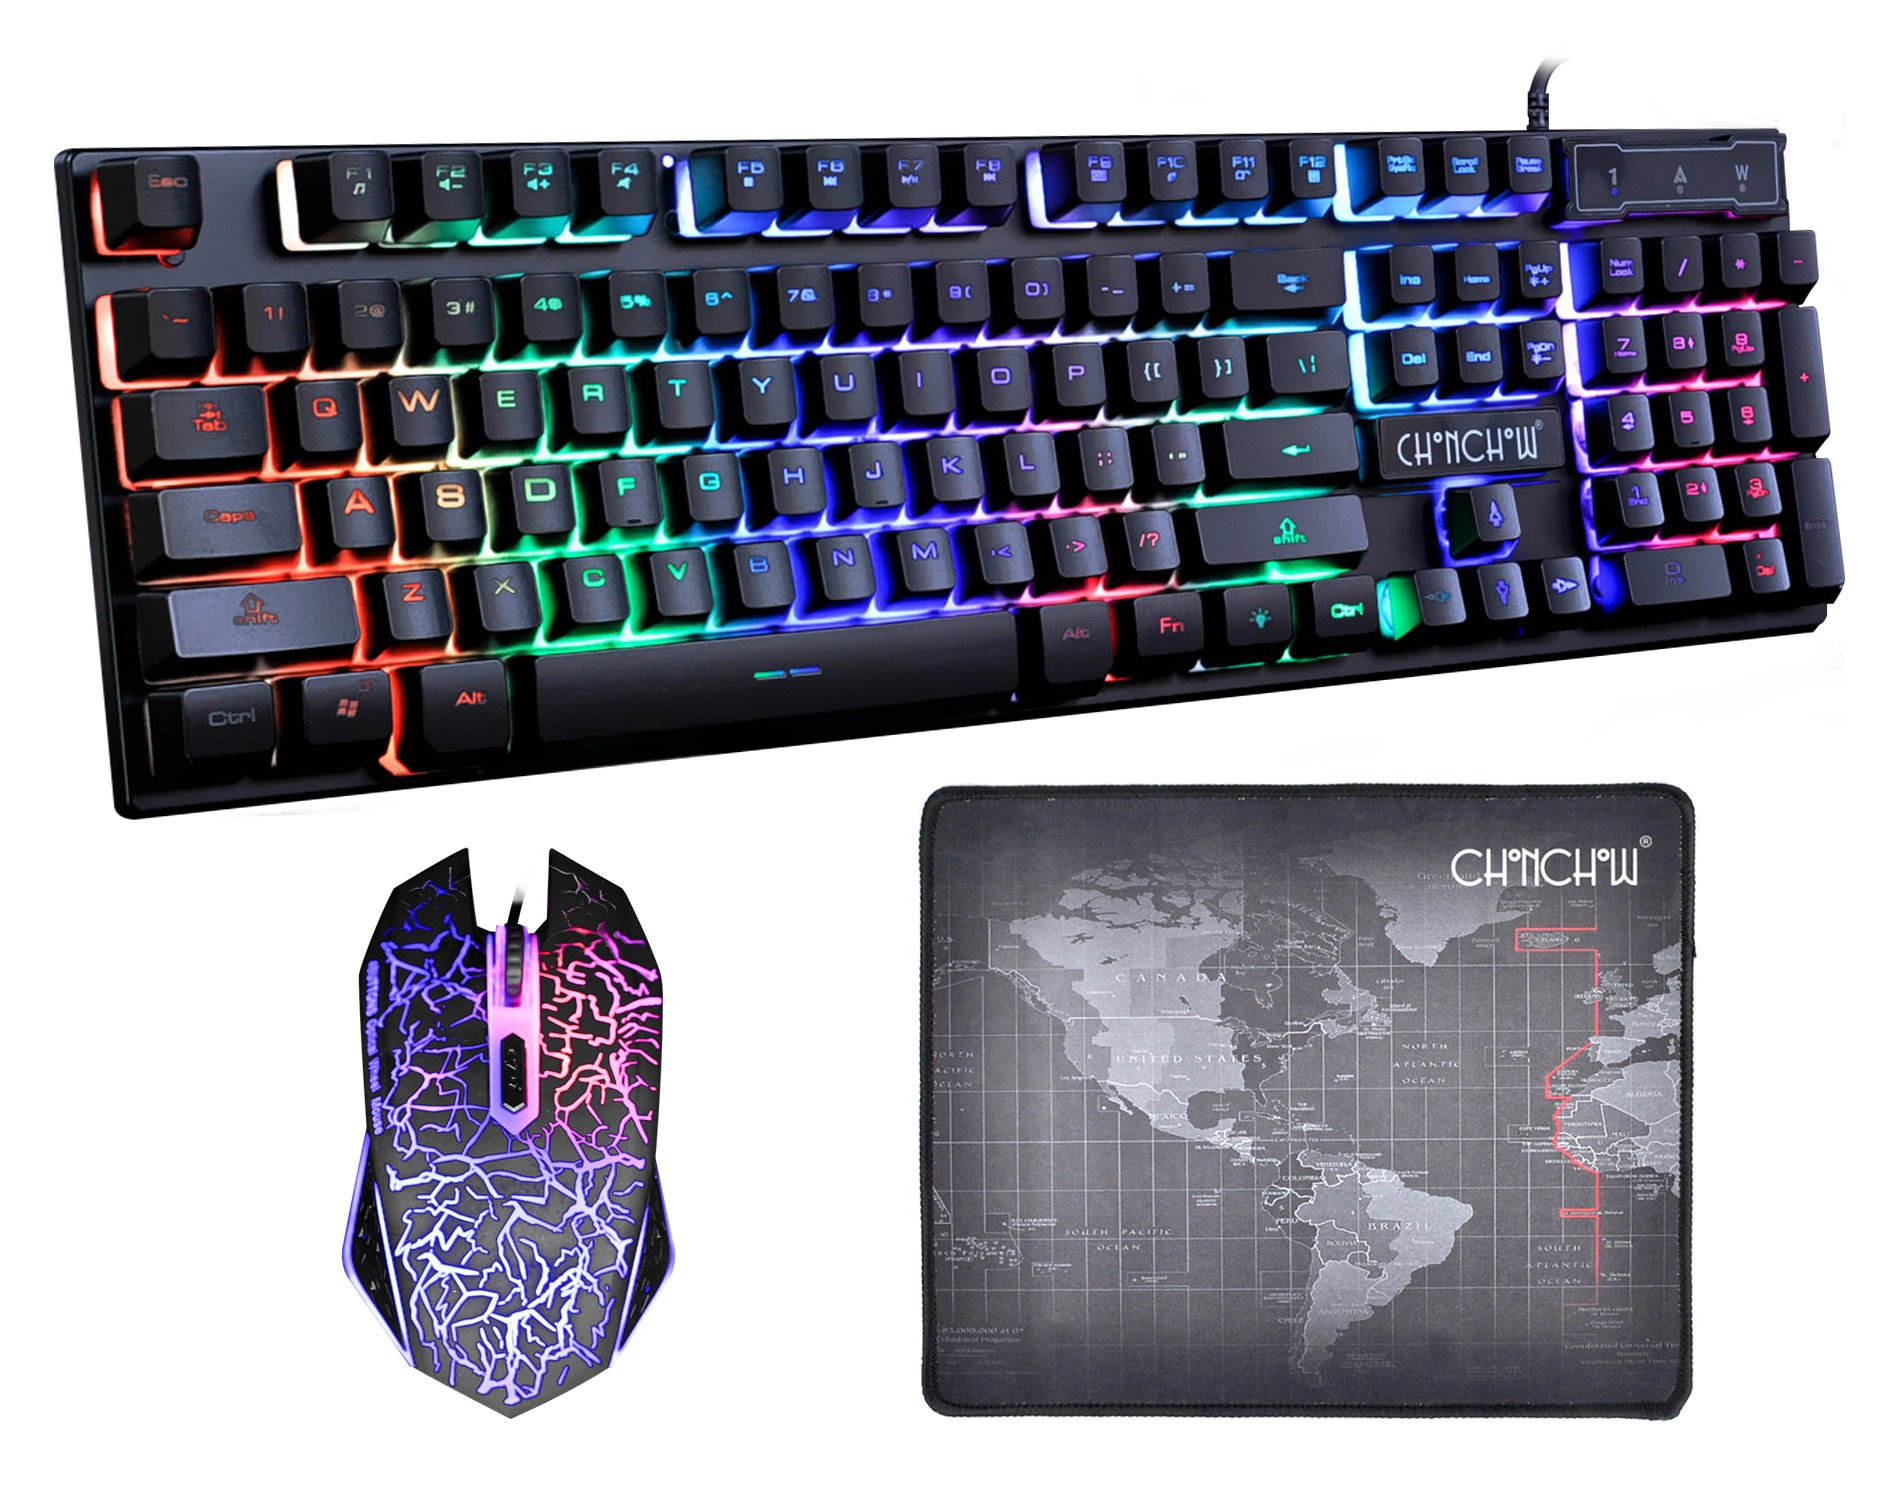 CHONCHOW LED Backlit Wired Gaming Keyboard and Mouse Mousepad Combo US Layout USB Keyboards Mechanical Feel with Mutilmedia Keys Character Illuminated for Windows Mac,1910B